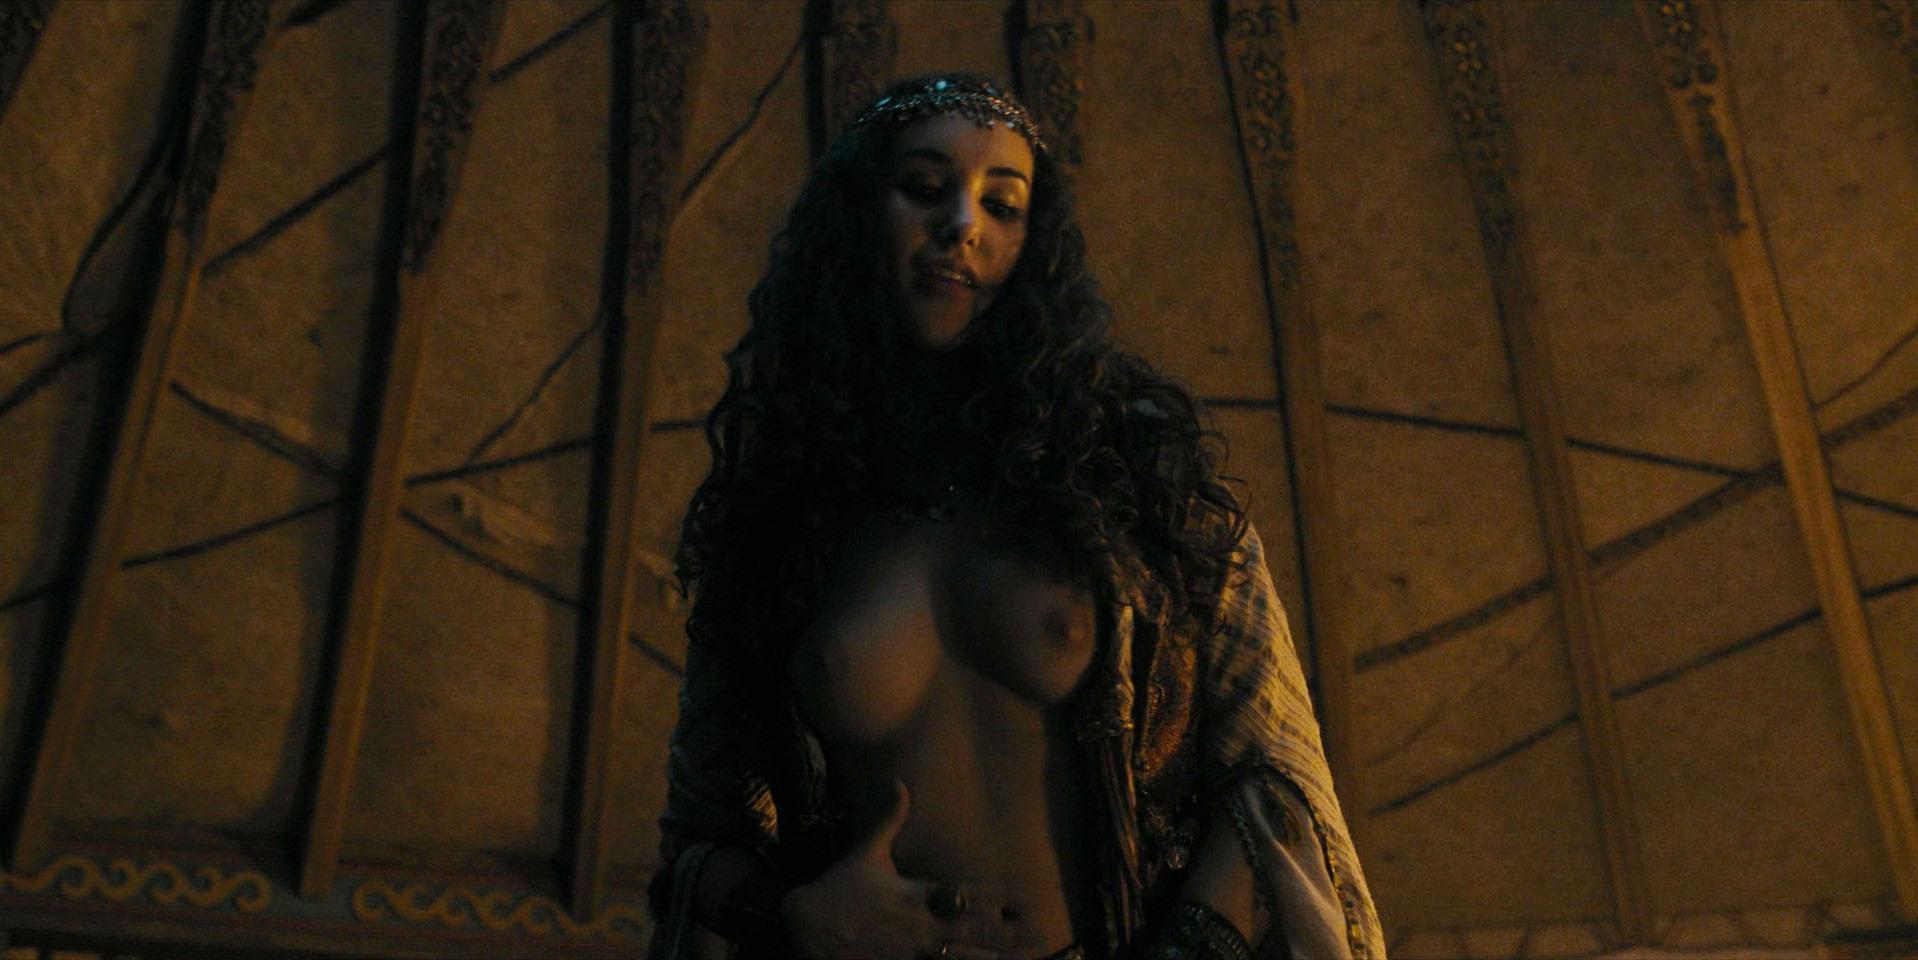 Olivia cheng in marco polo s1e34 - 5 9